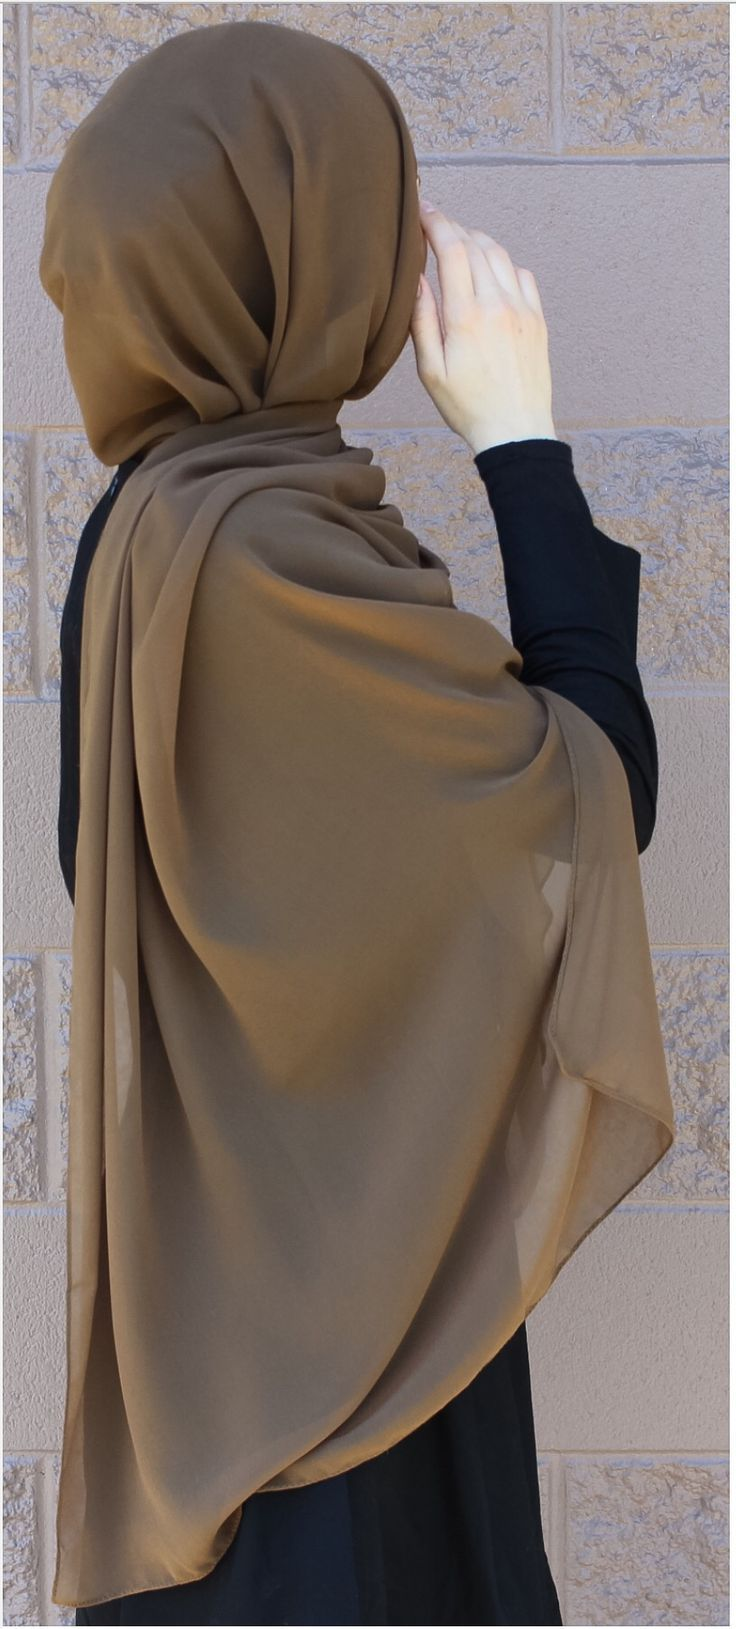 Hijab Fashion 2016/2017: Luxurious chiffon hijab from www.thehijabcity.com. FREE US shipping